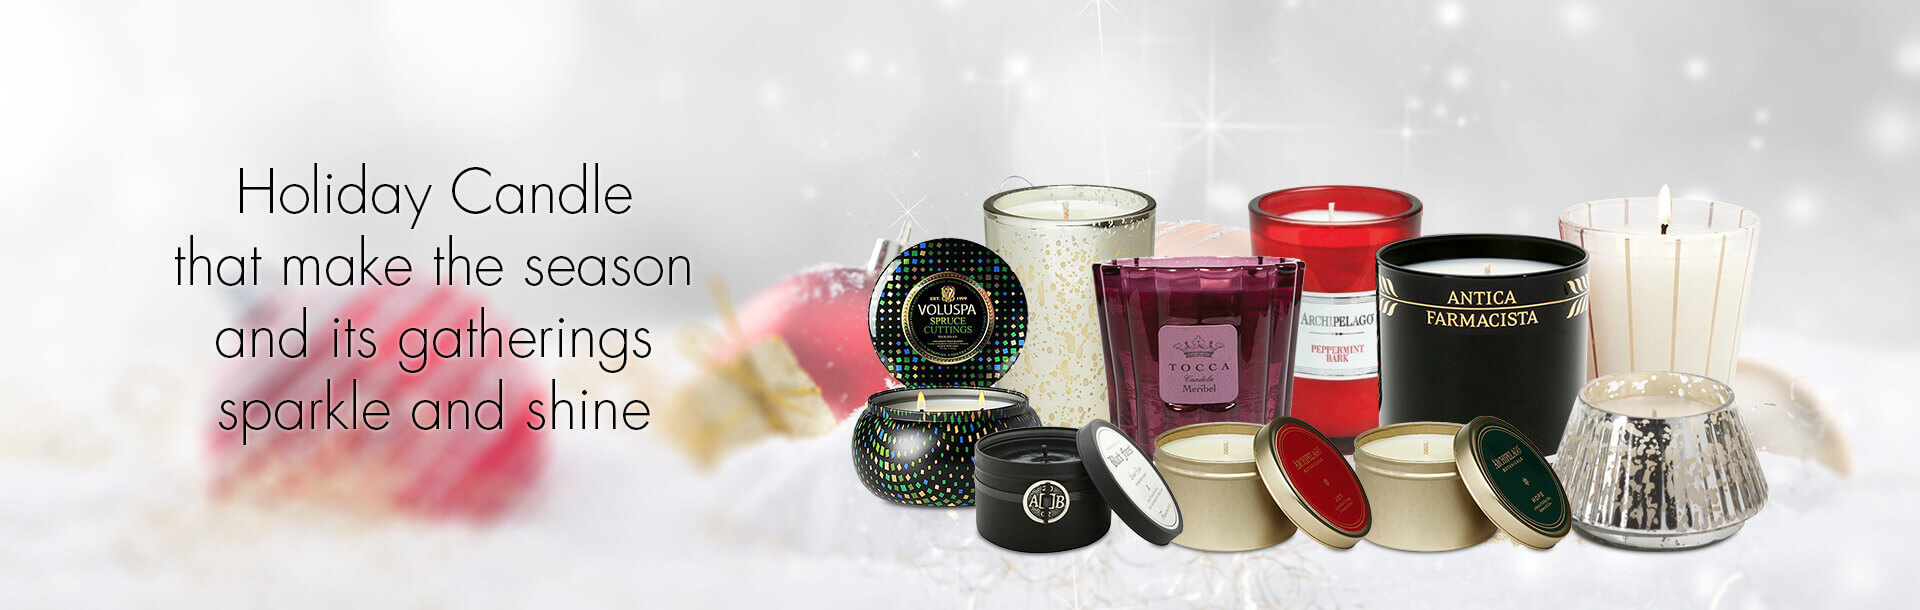 Holiday Candles Collection